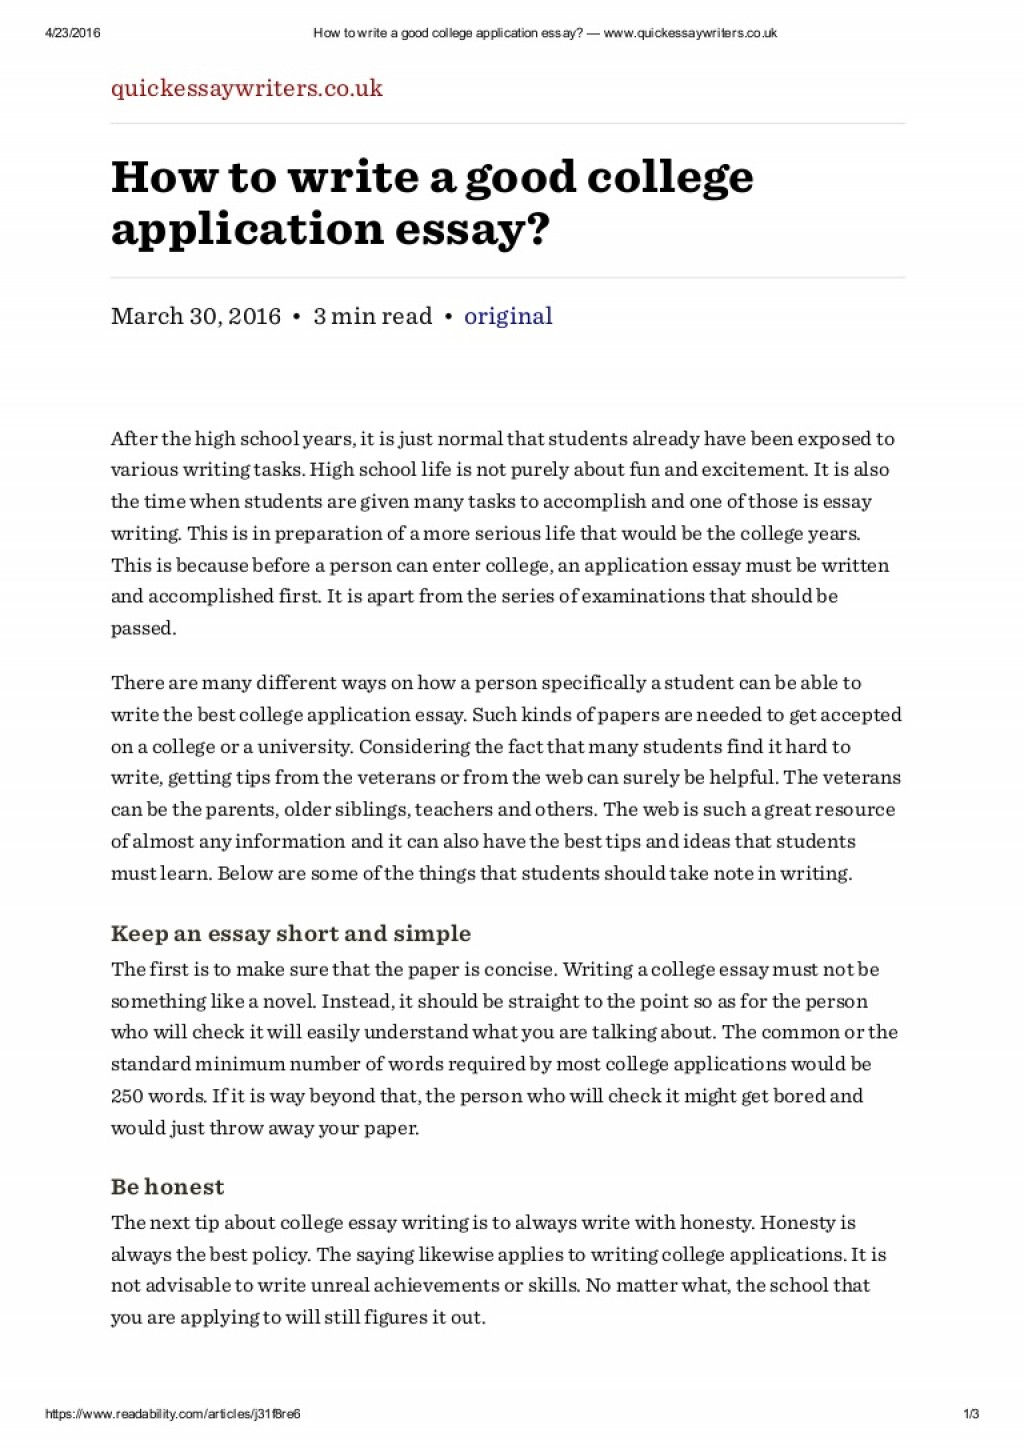 002 Howtowriteagoodcollegeapplicationessaywww Thumbnail Essay Example Writing College Application Marvelous Essays Tips For Level Admission Sample Guide To Large